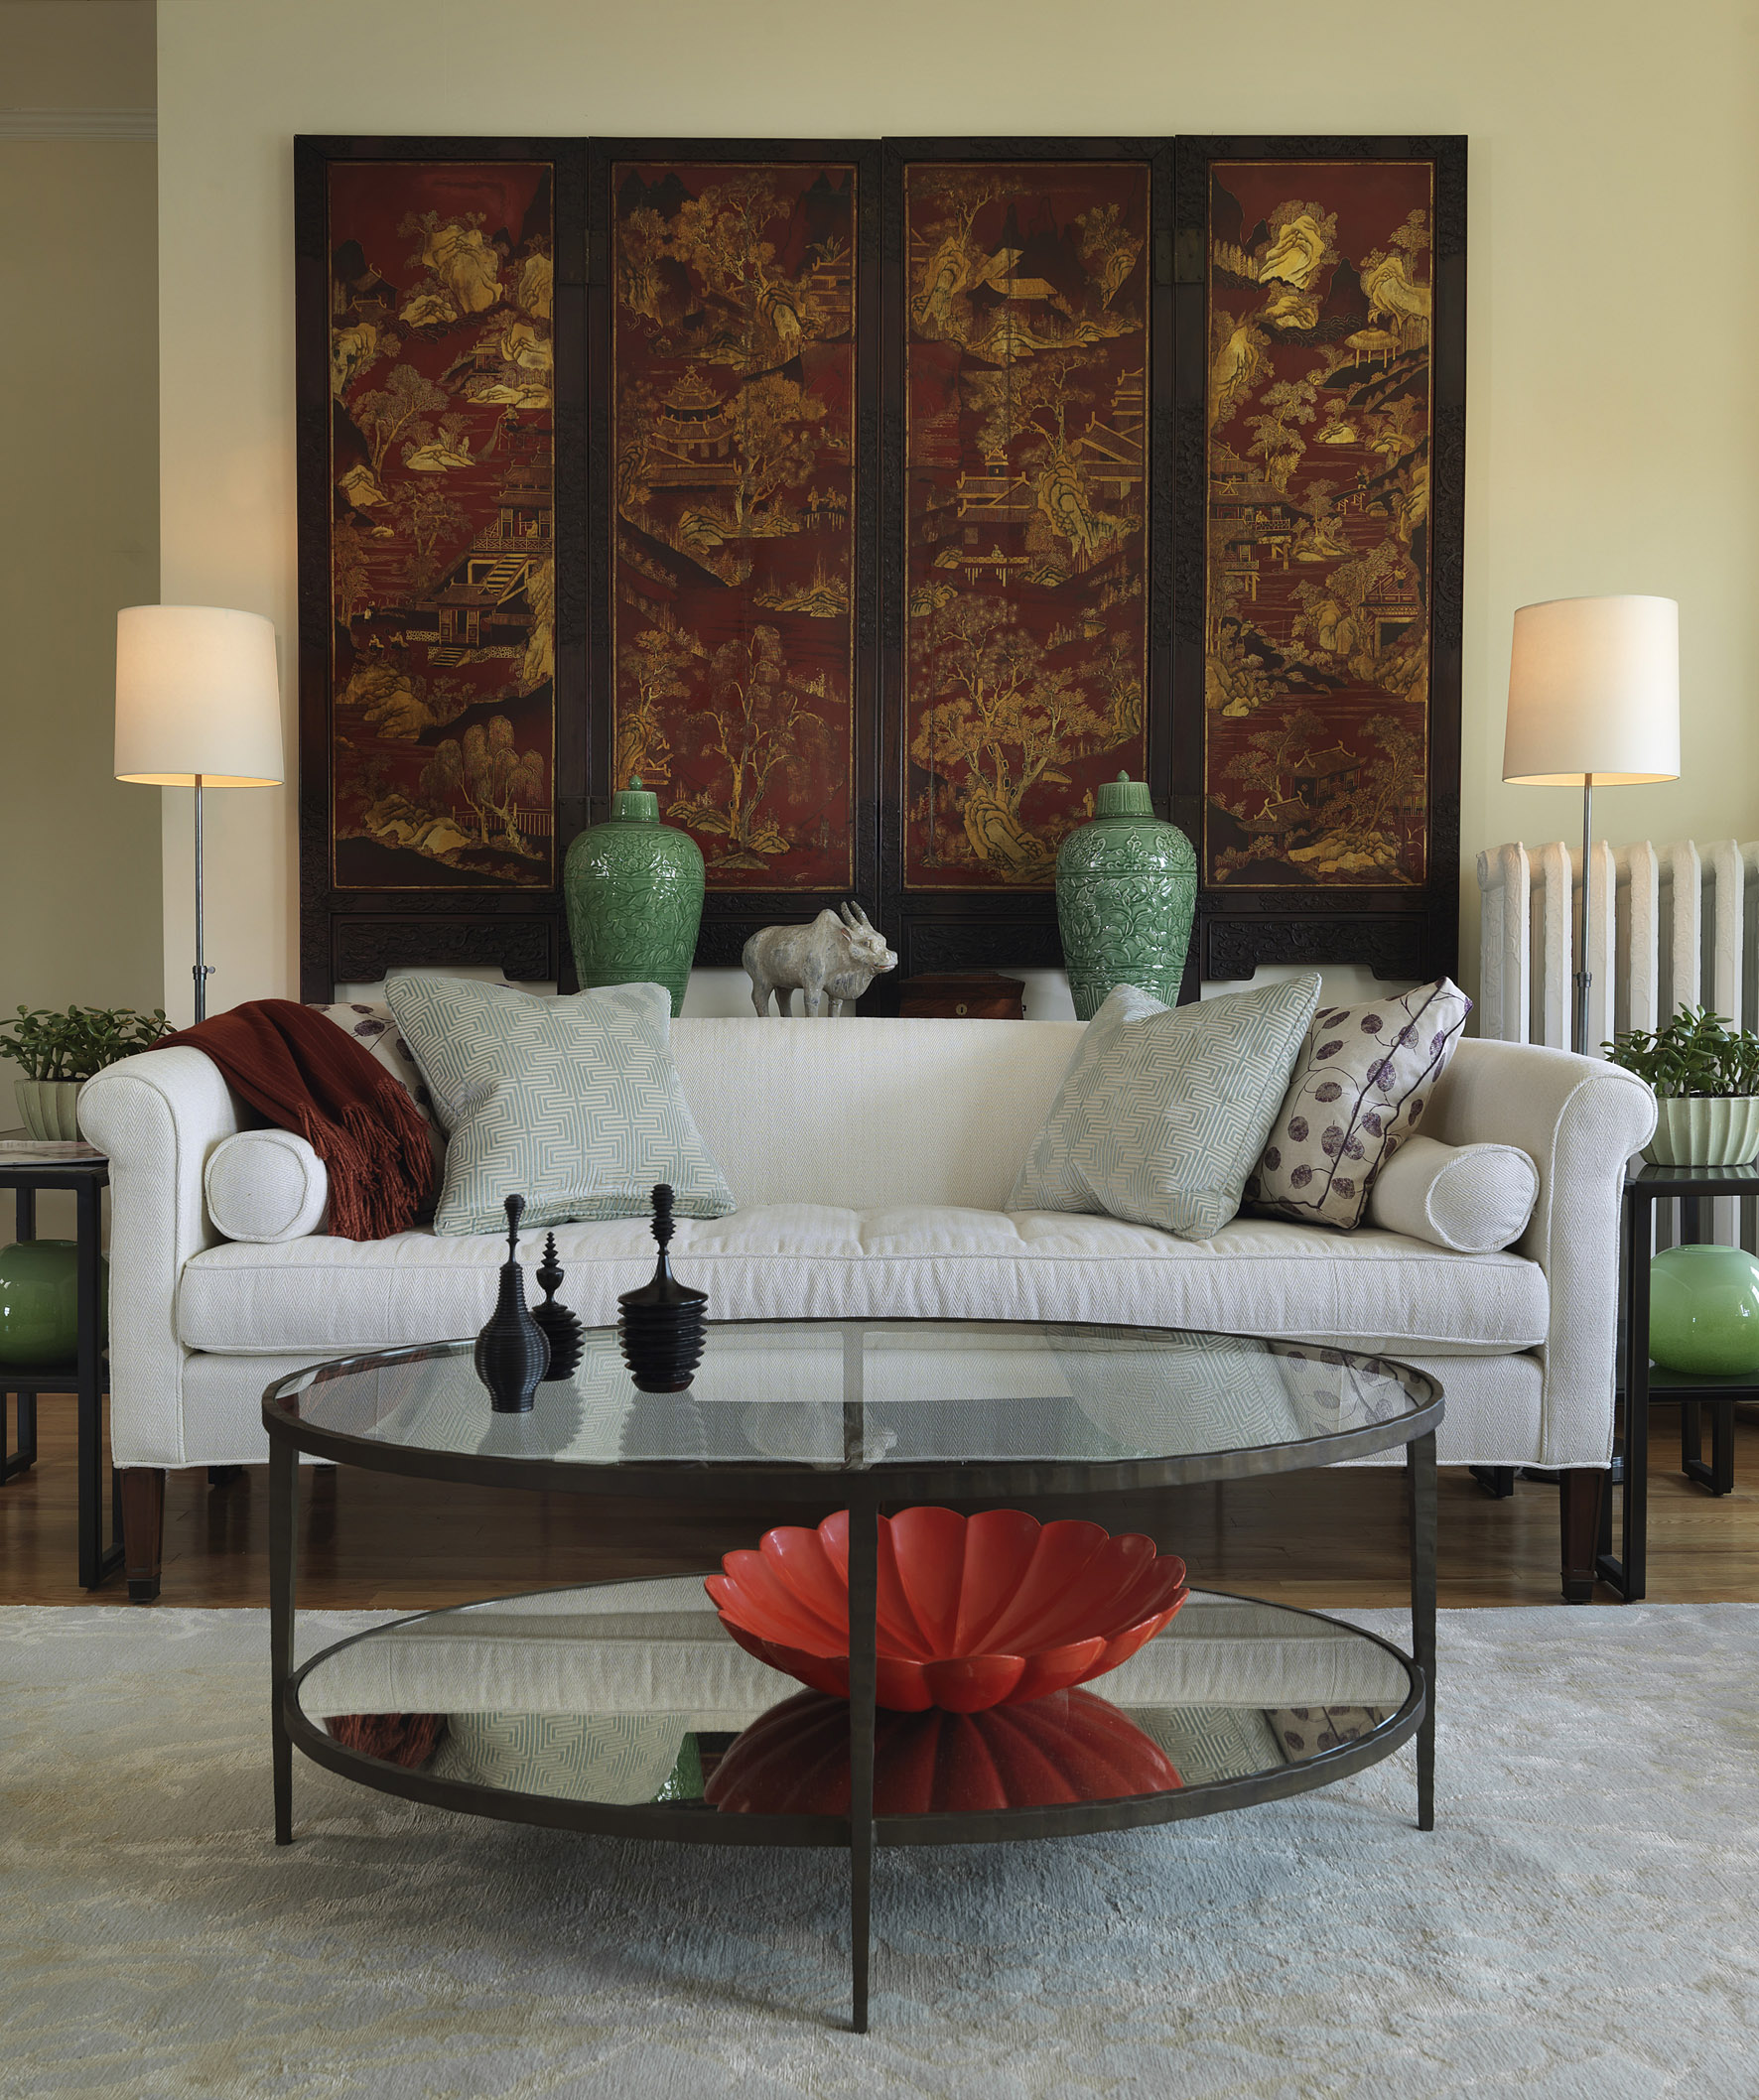 Living Room Sets Boston Ma heidi pribell • interior designer boston, ma • asian living room